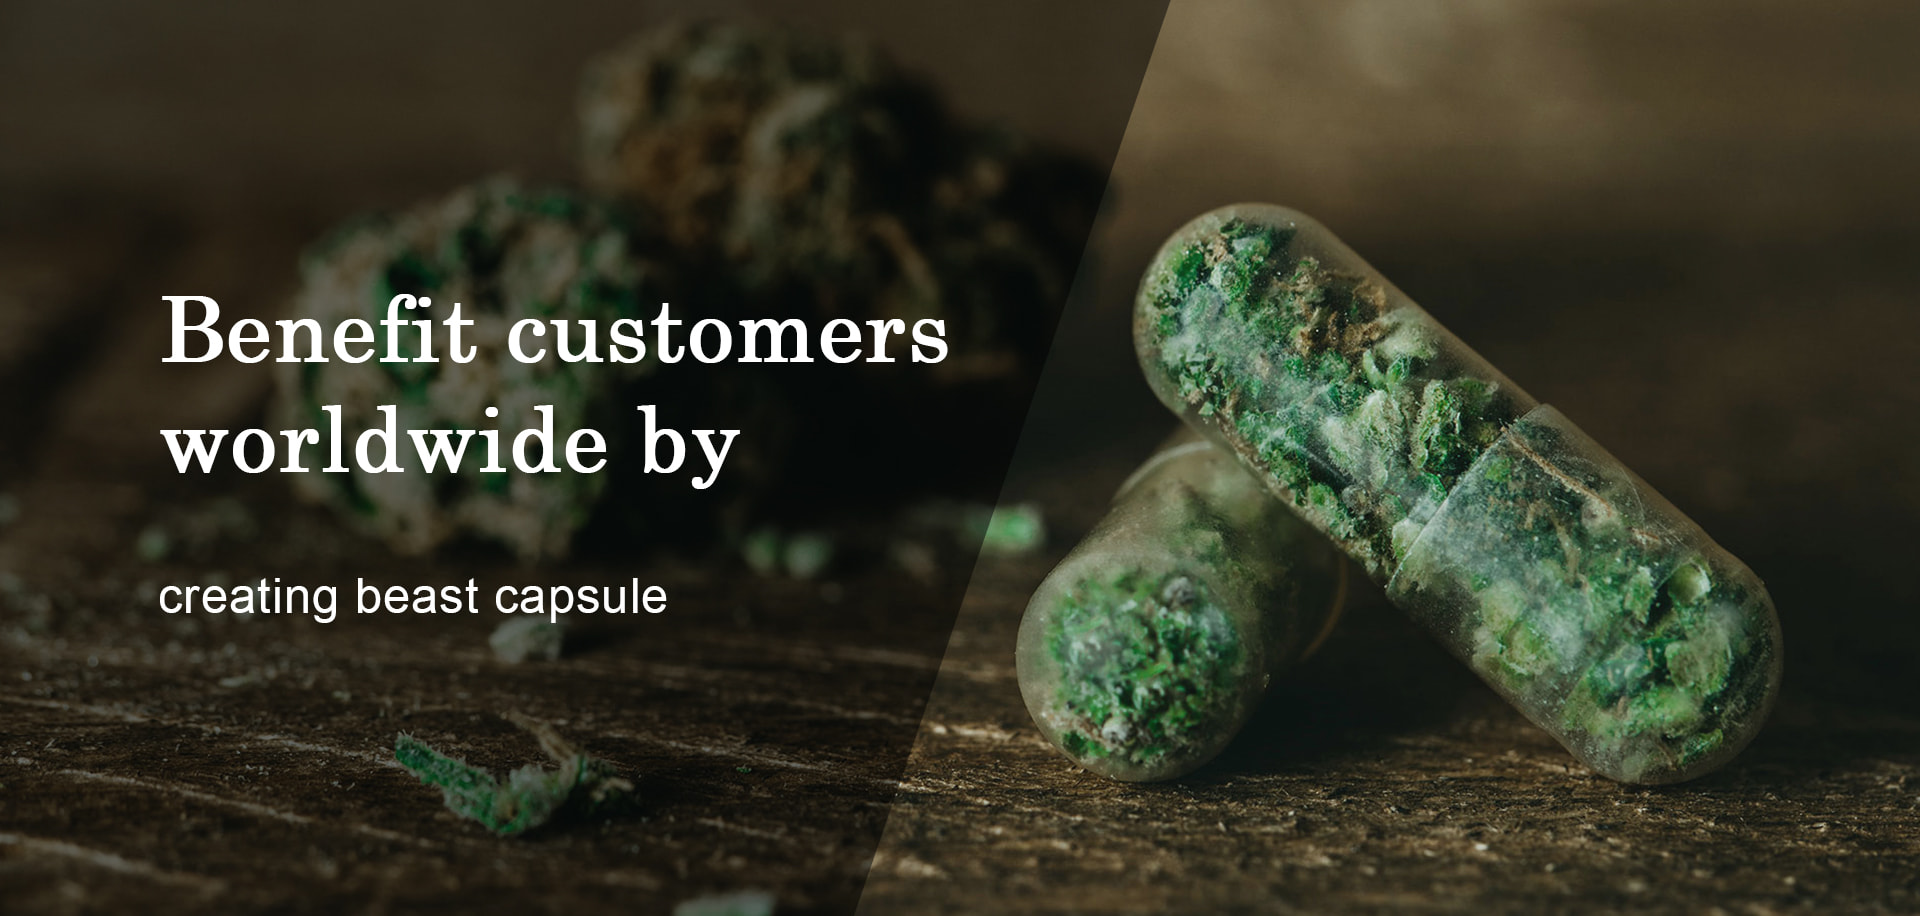 What's the introduction about hollow capsules?